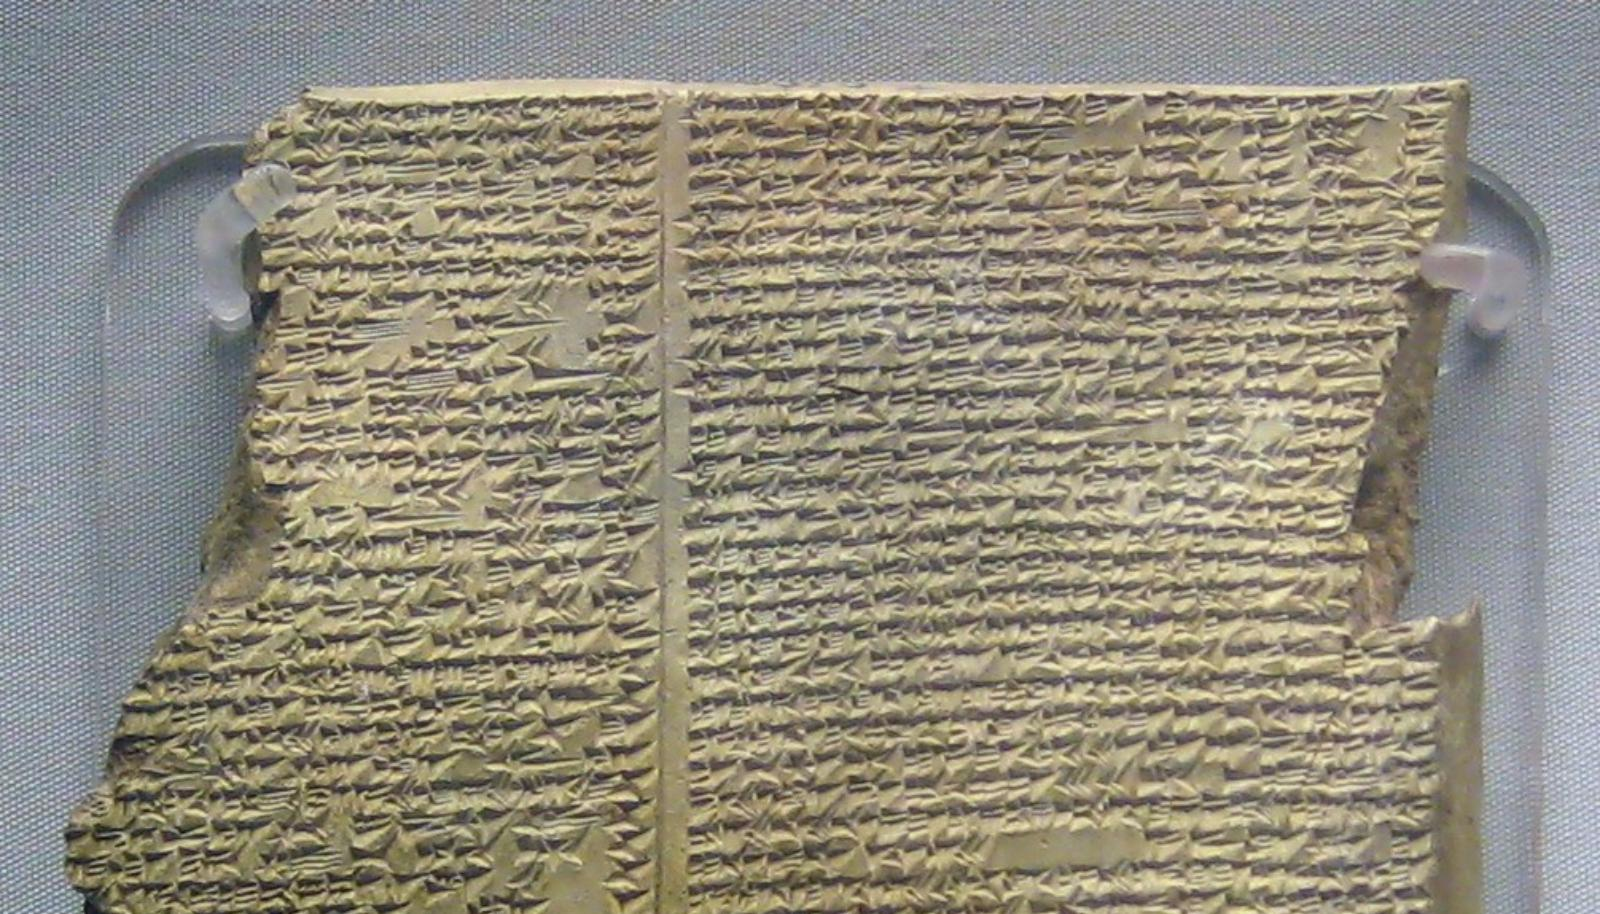 One of the tablets with the myths of Gilgamesh.